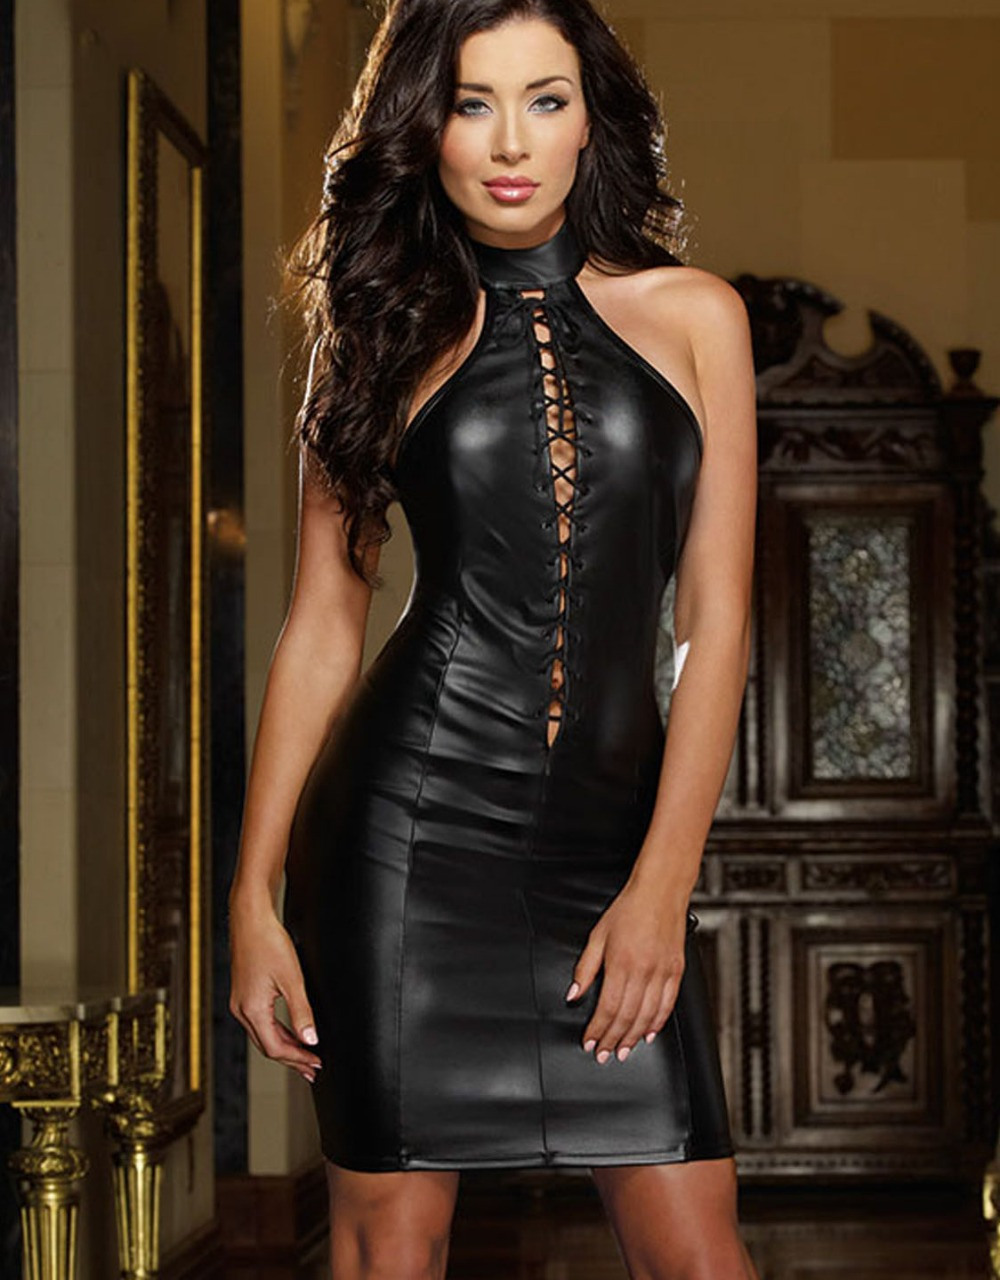 221ee67881fcd Leather Dress Wholesale Price Hot Sale Fashion Black Women Club Dress High  Quality Vinyl Mini Sexy Halter Dresses 6301